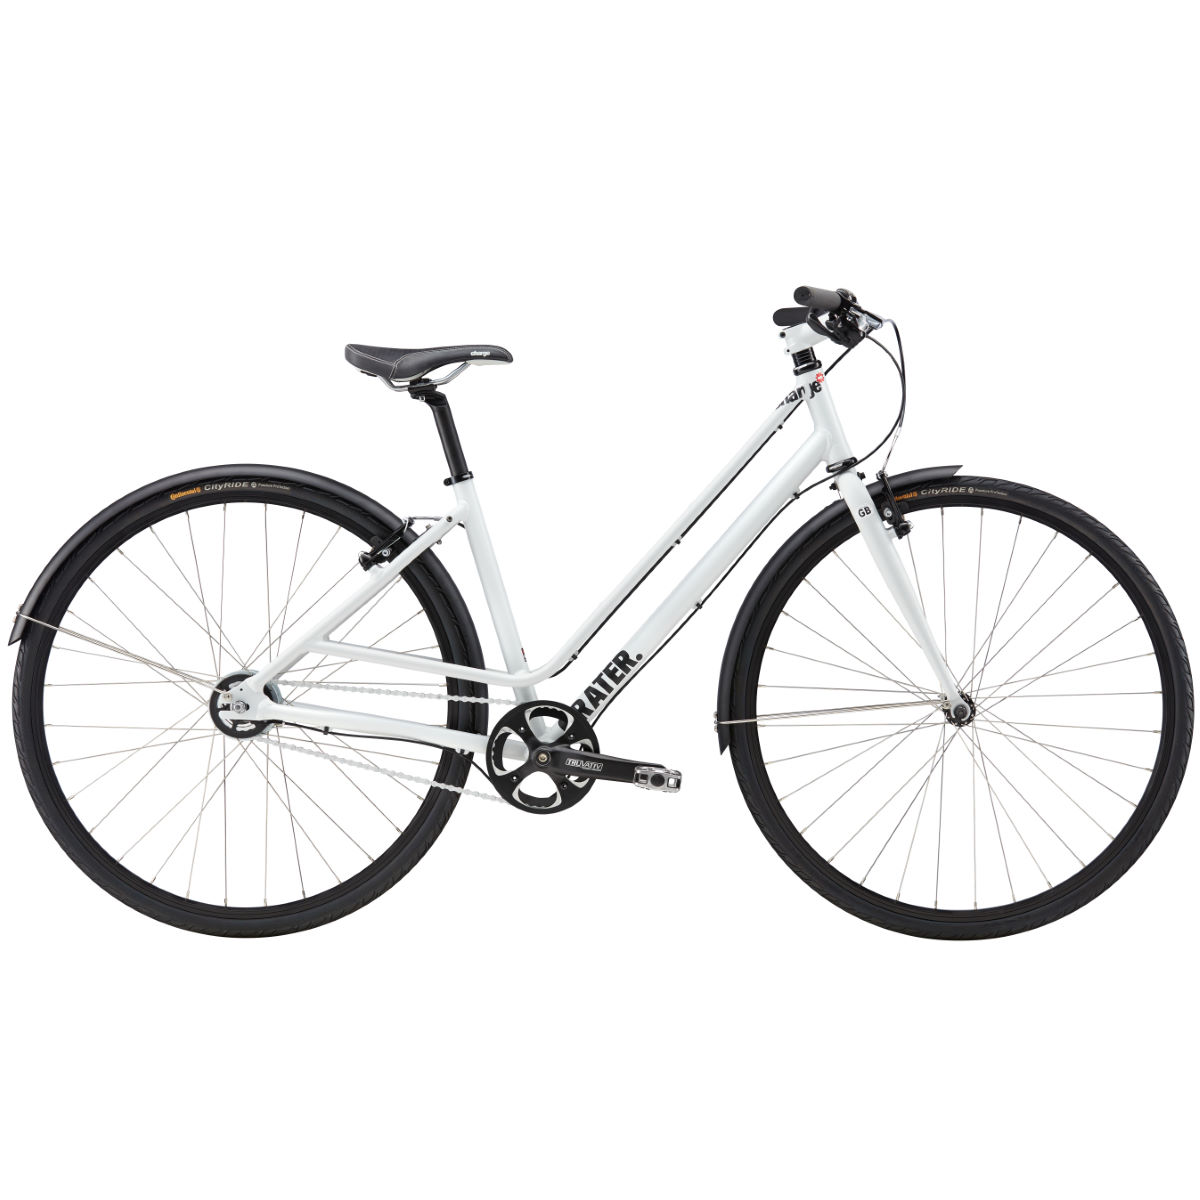 Vélo Charge Grater Mixte 2 (hybride, Alfine, 2017) - LG Stock Bike